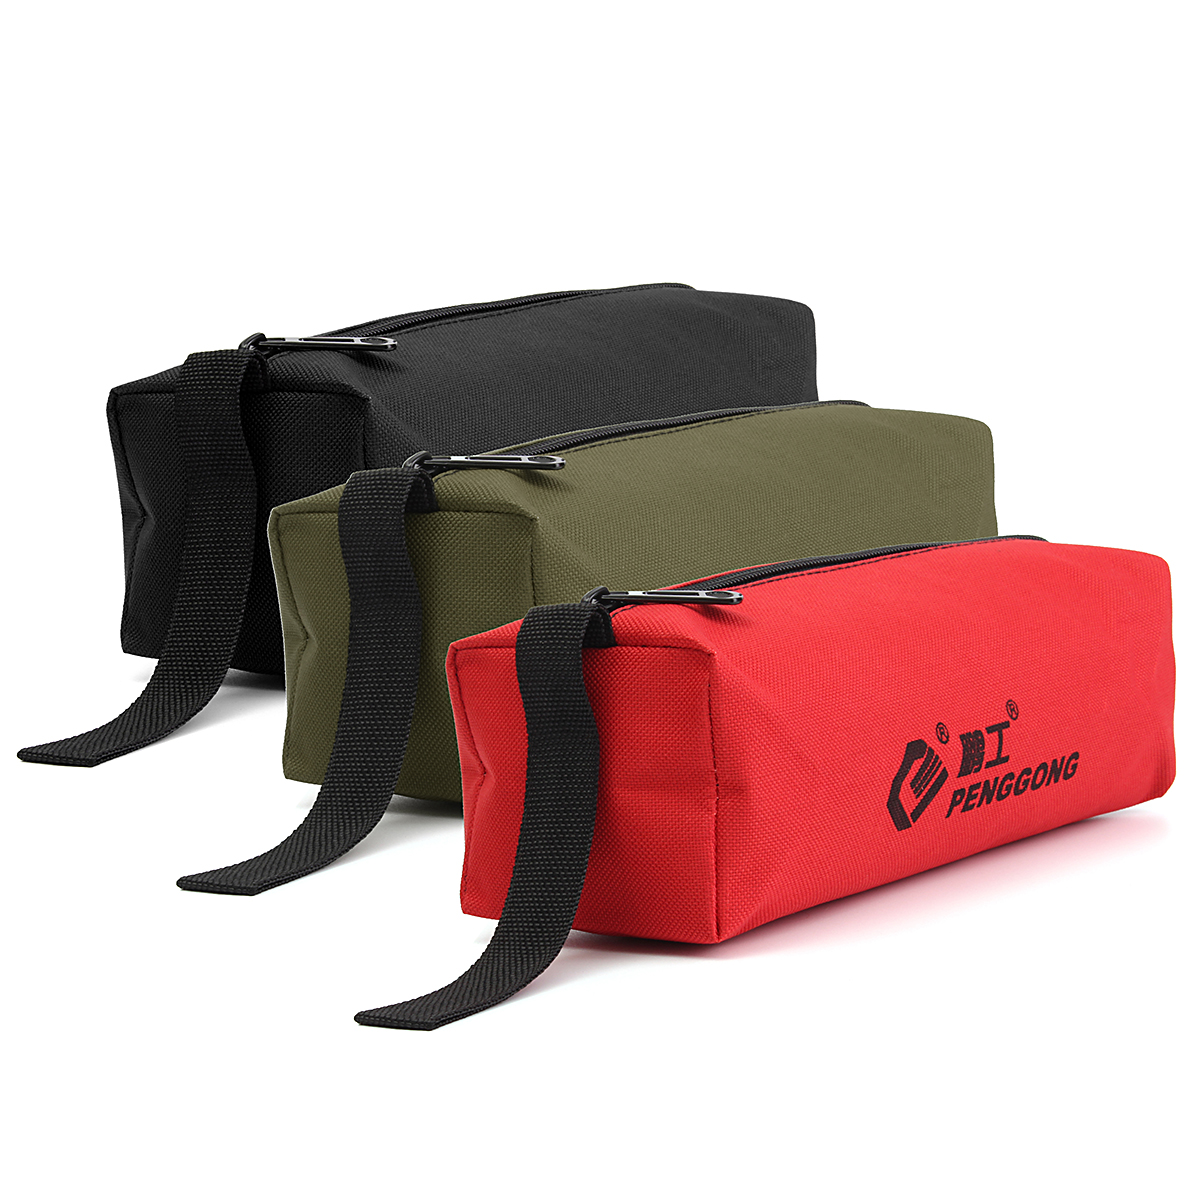 Storage Tools Bag Case Waterproof Multi-function for Small Metal Parts w// Handle